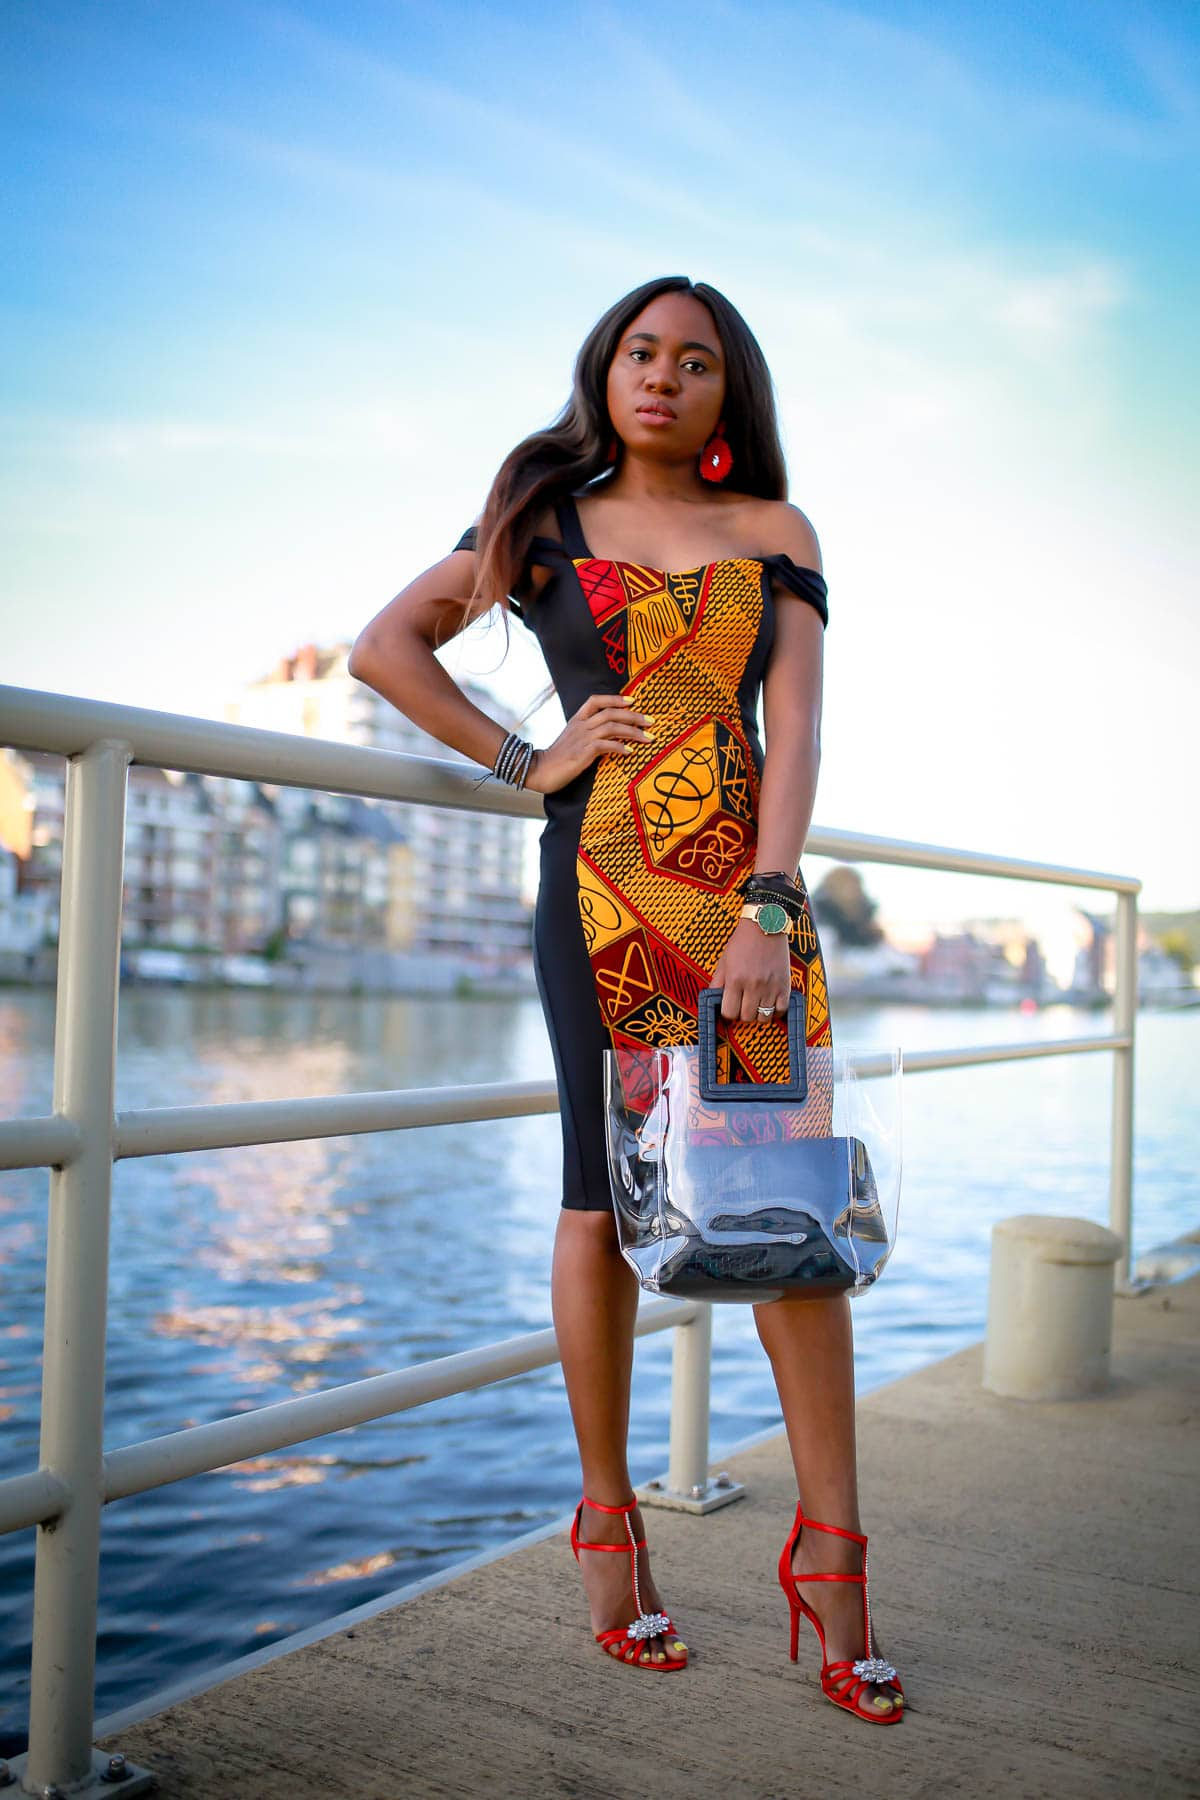 #africanfashion Totally crushing on this African print sheath dress that is perfect for special events like weddings, birthday parties and more. African fashion lover, Louisa, shares this stunning ankara dress and where to find a similar style. #africanfashionoutfits